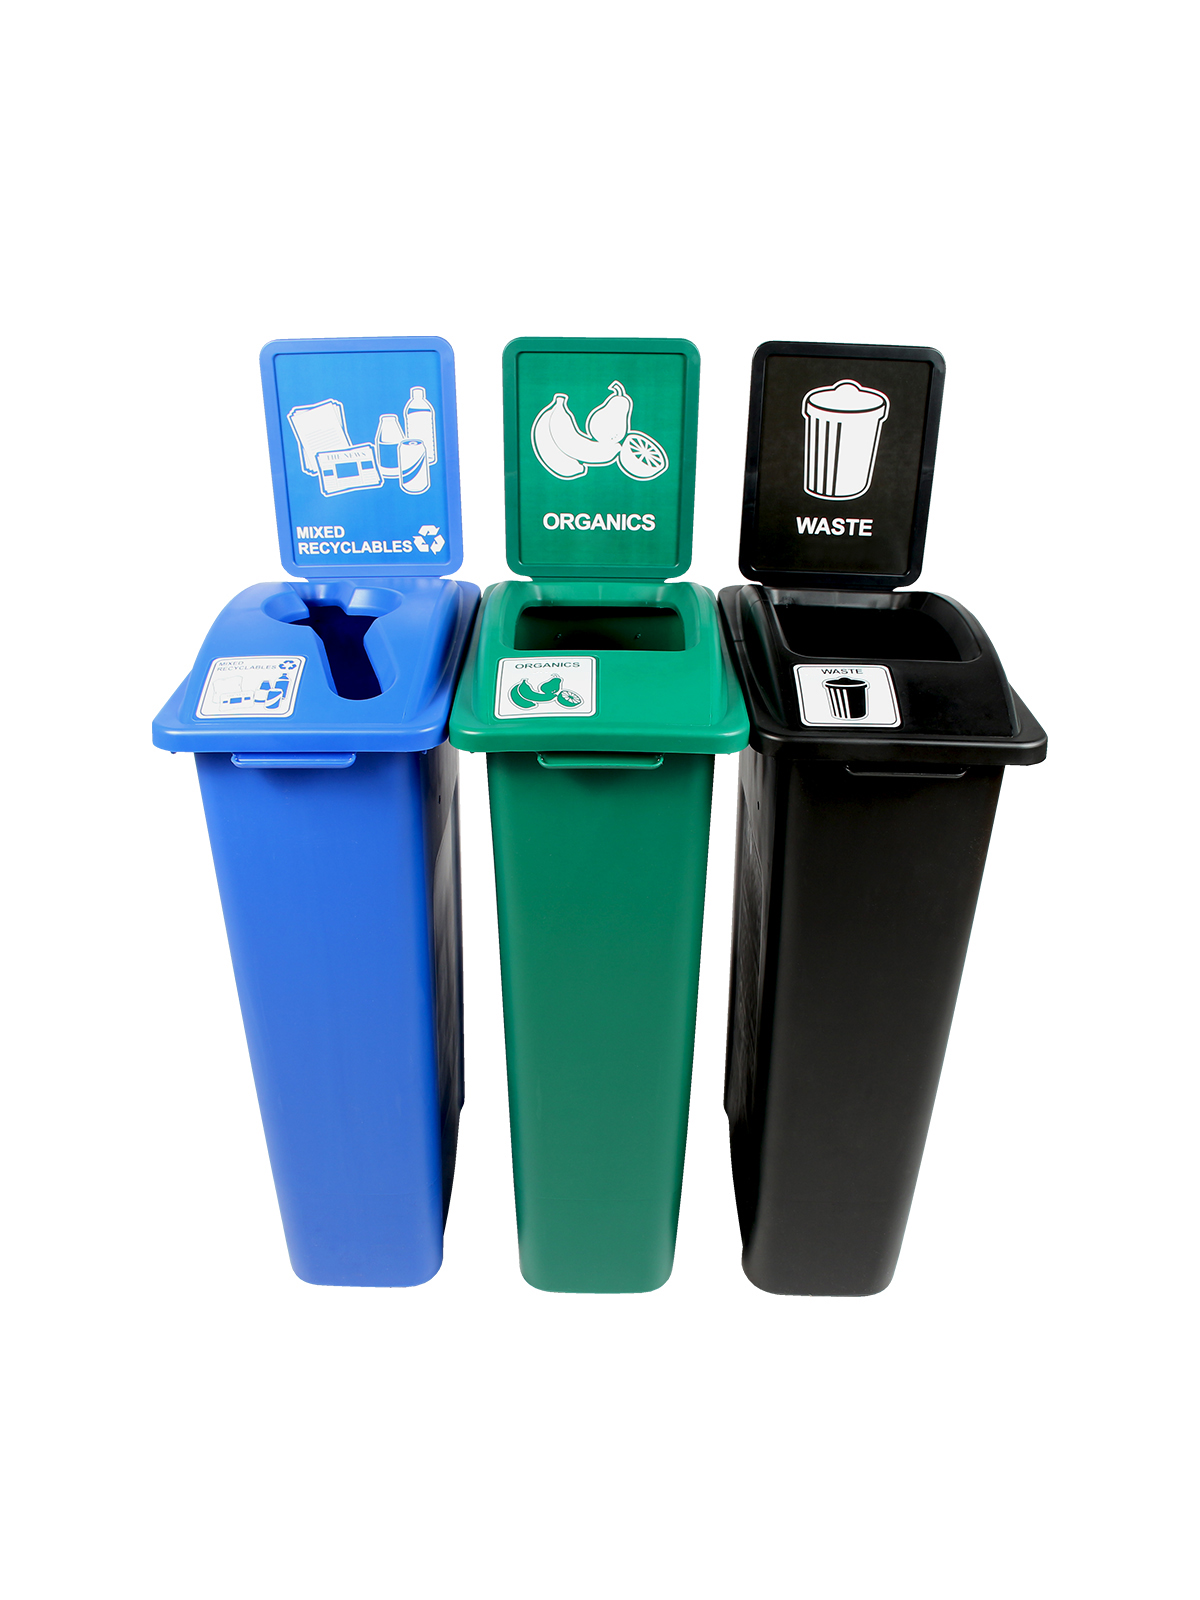 WASTE WATCHER - Triple - Mixed Recyclables-Organics-Waste - Mixed-Full - Blue-Green-Black